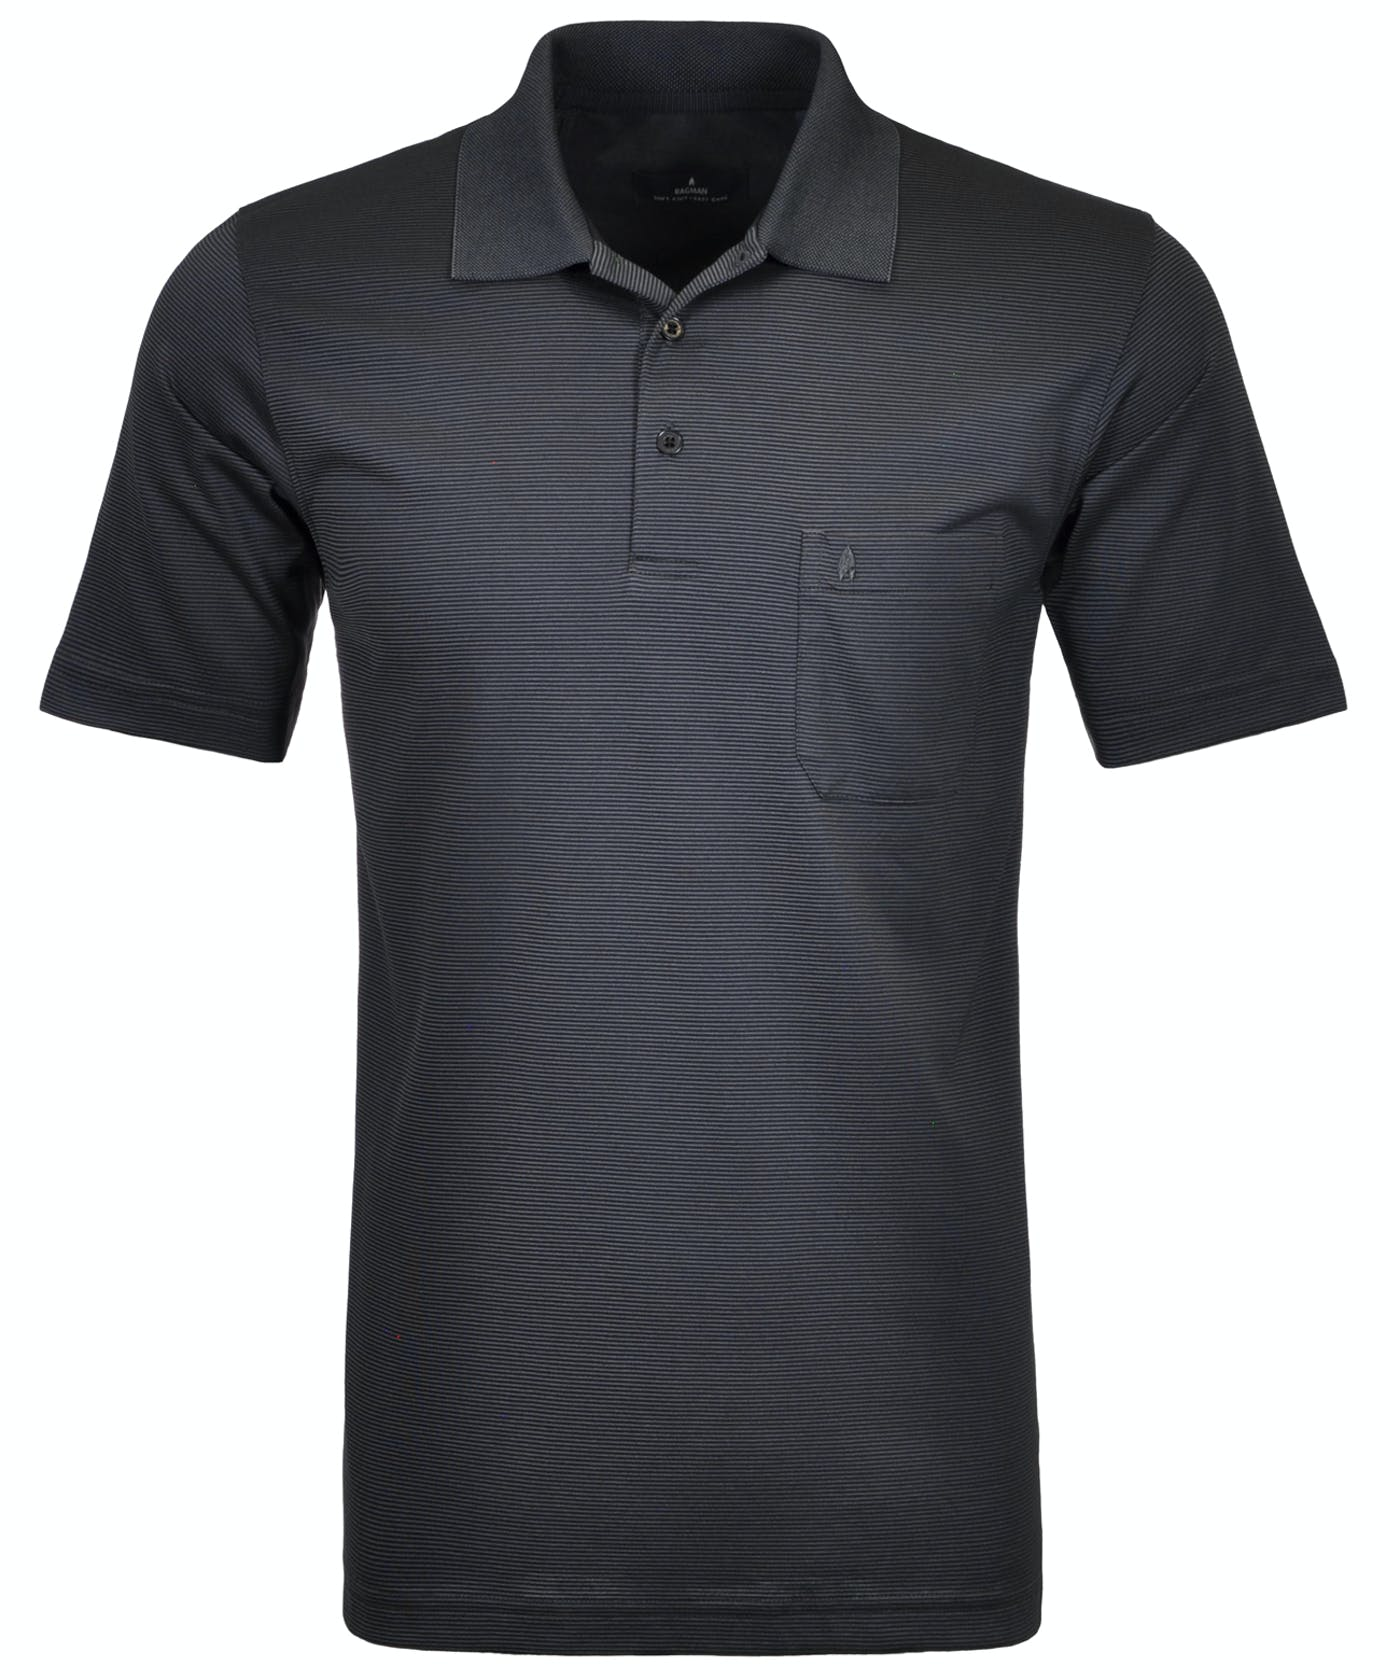 Softknit-Polo fein gestreift